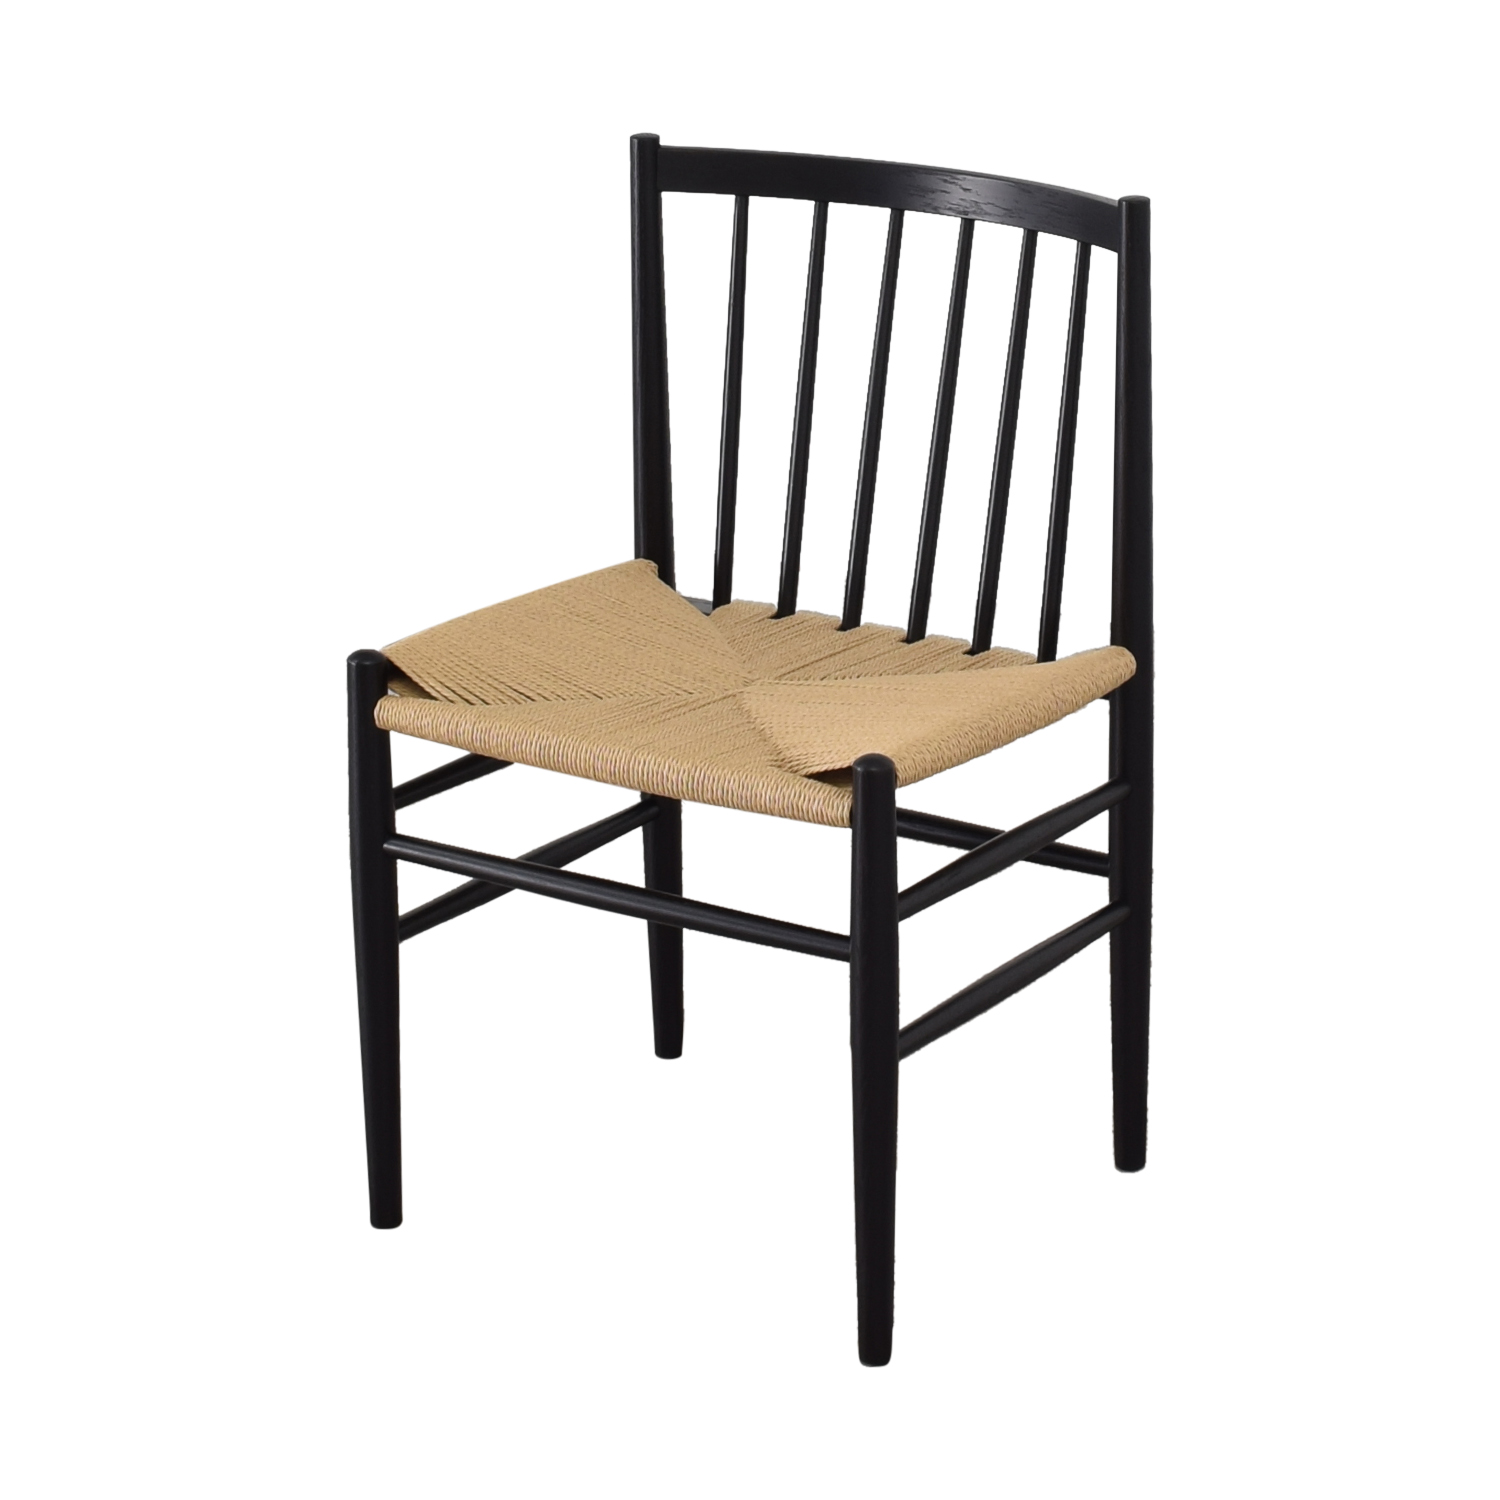 buy Mater Mater J80 Dining Side Chair online